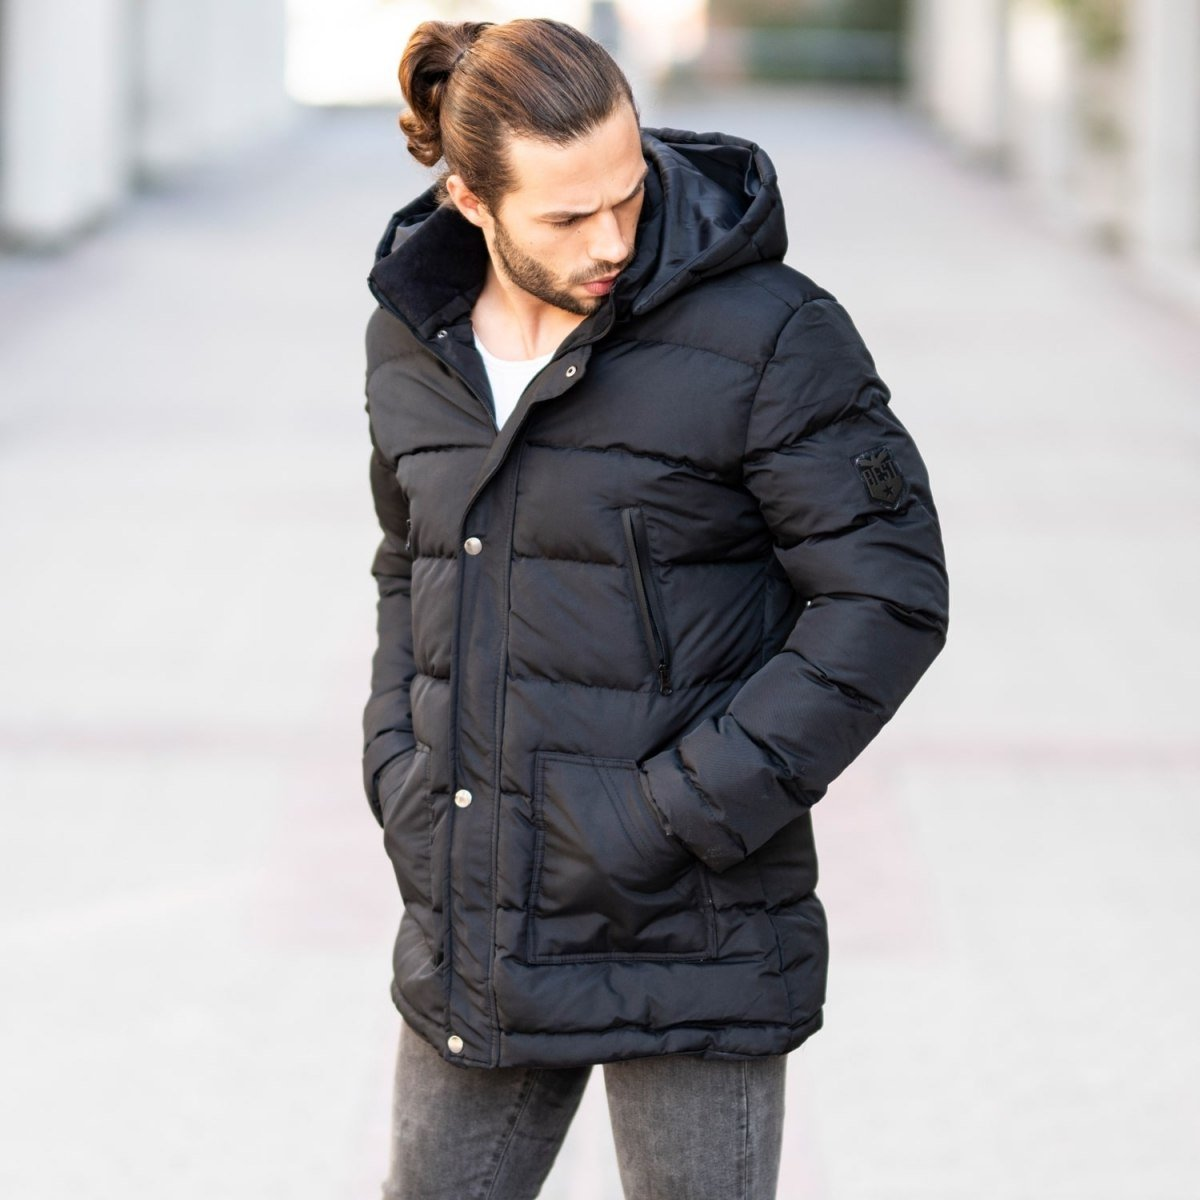 Windproof Puff Jacket In Black MV Jacket Collection - 1